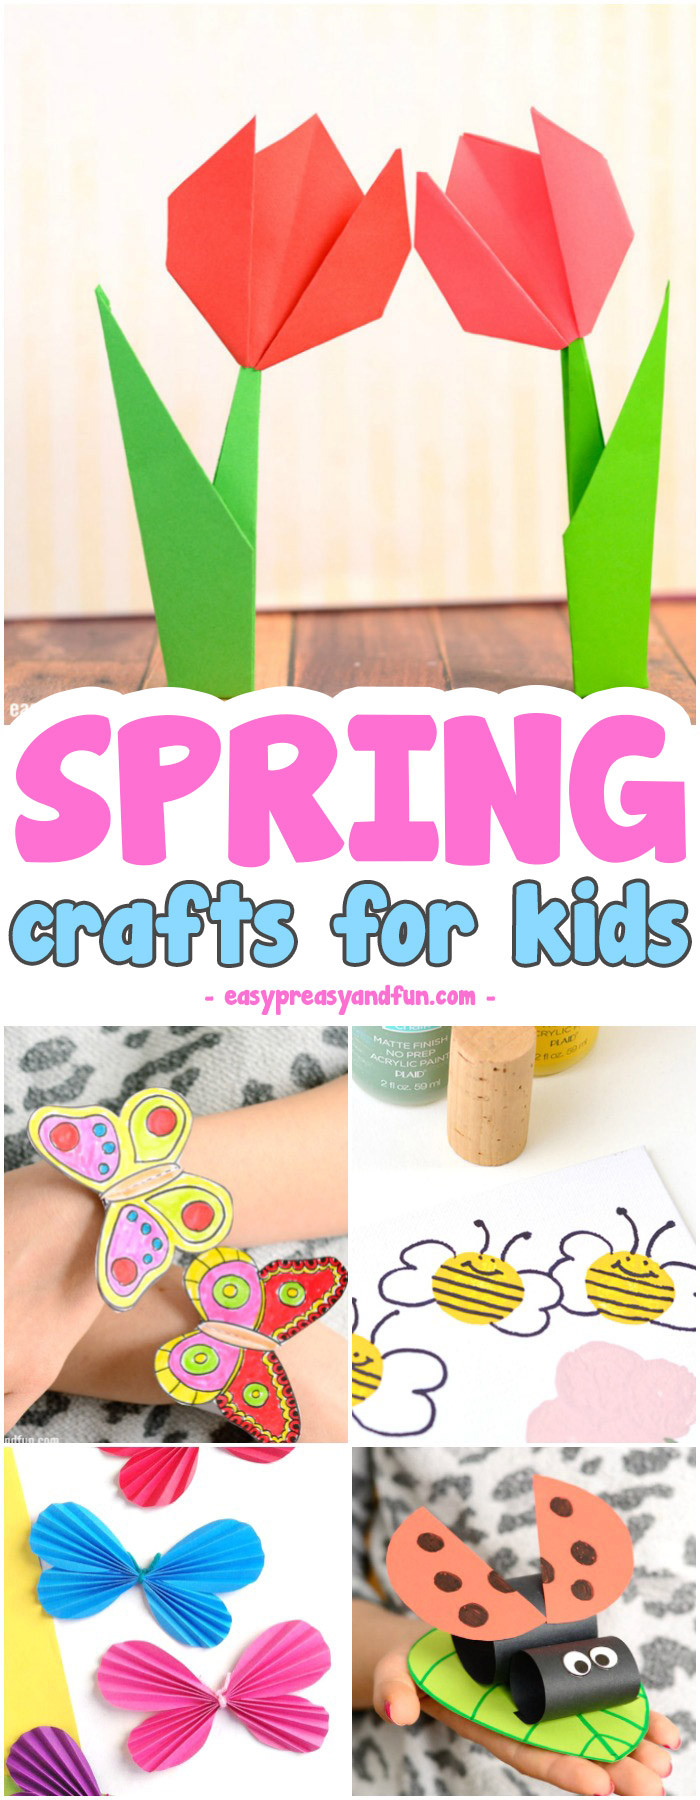 Art And Craft Ideas For Kids  Spring Crafts for Kids Art and Craft Project Ideas for